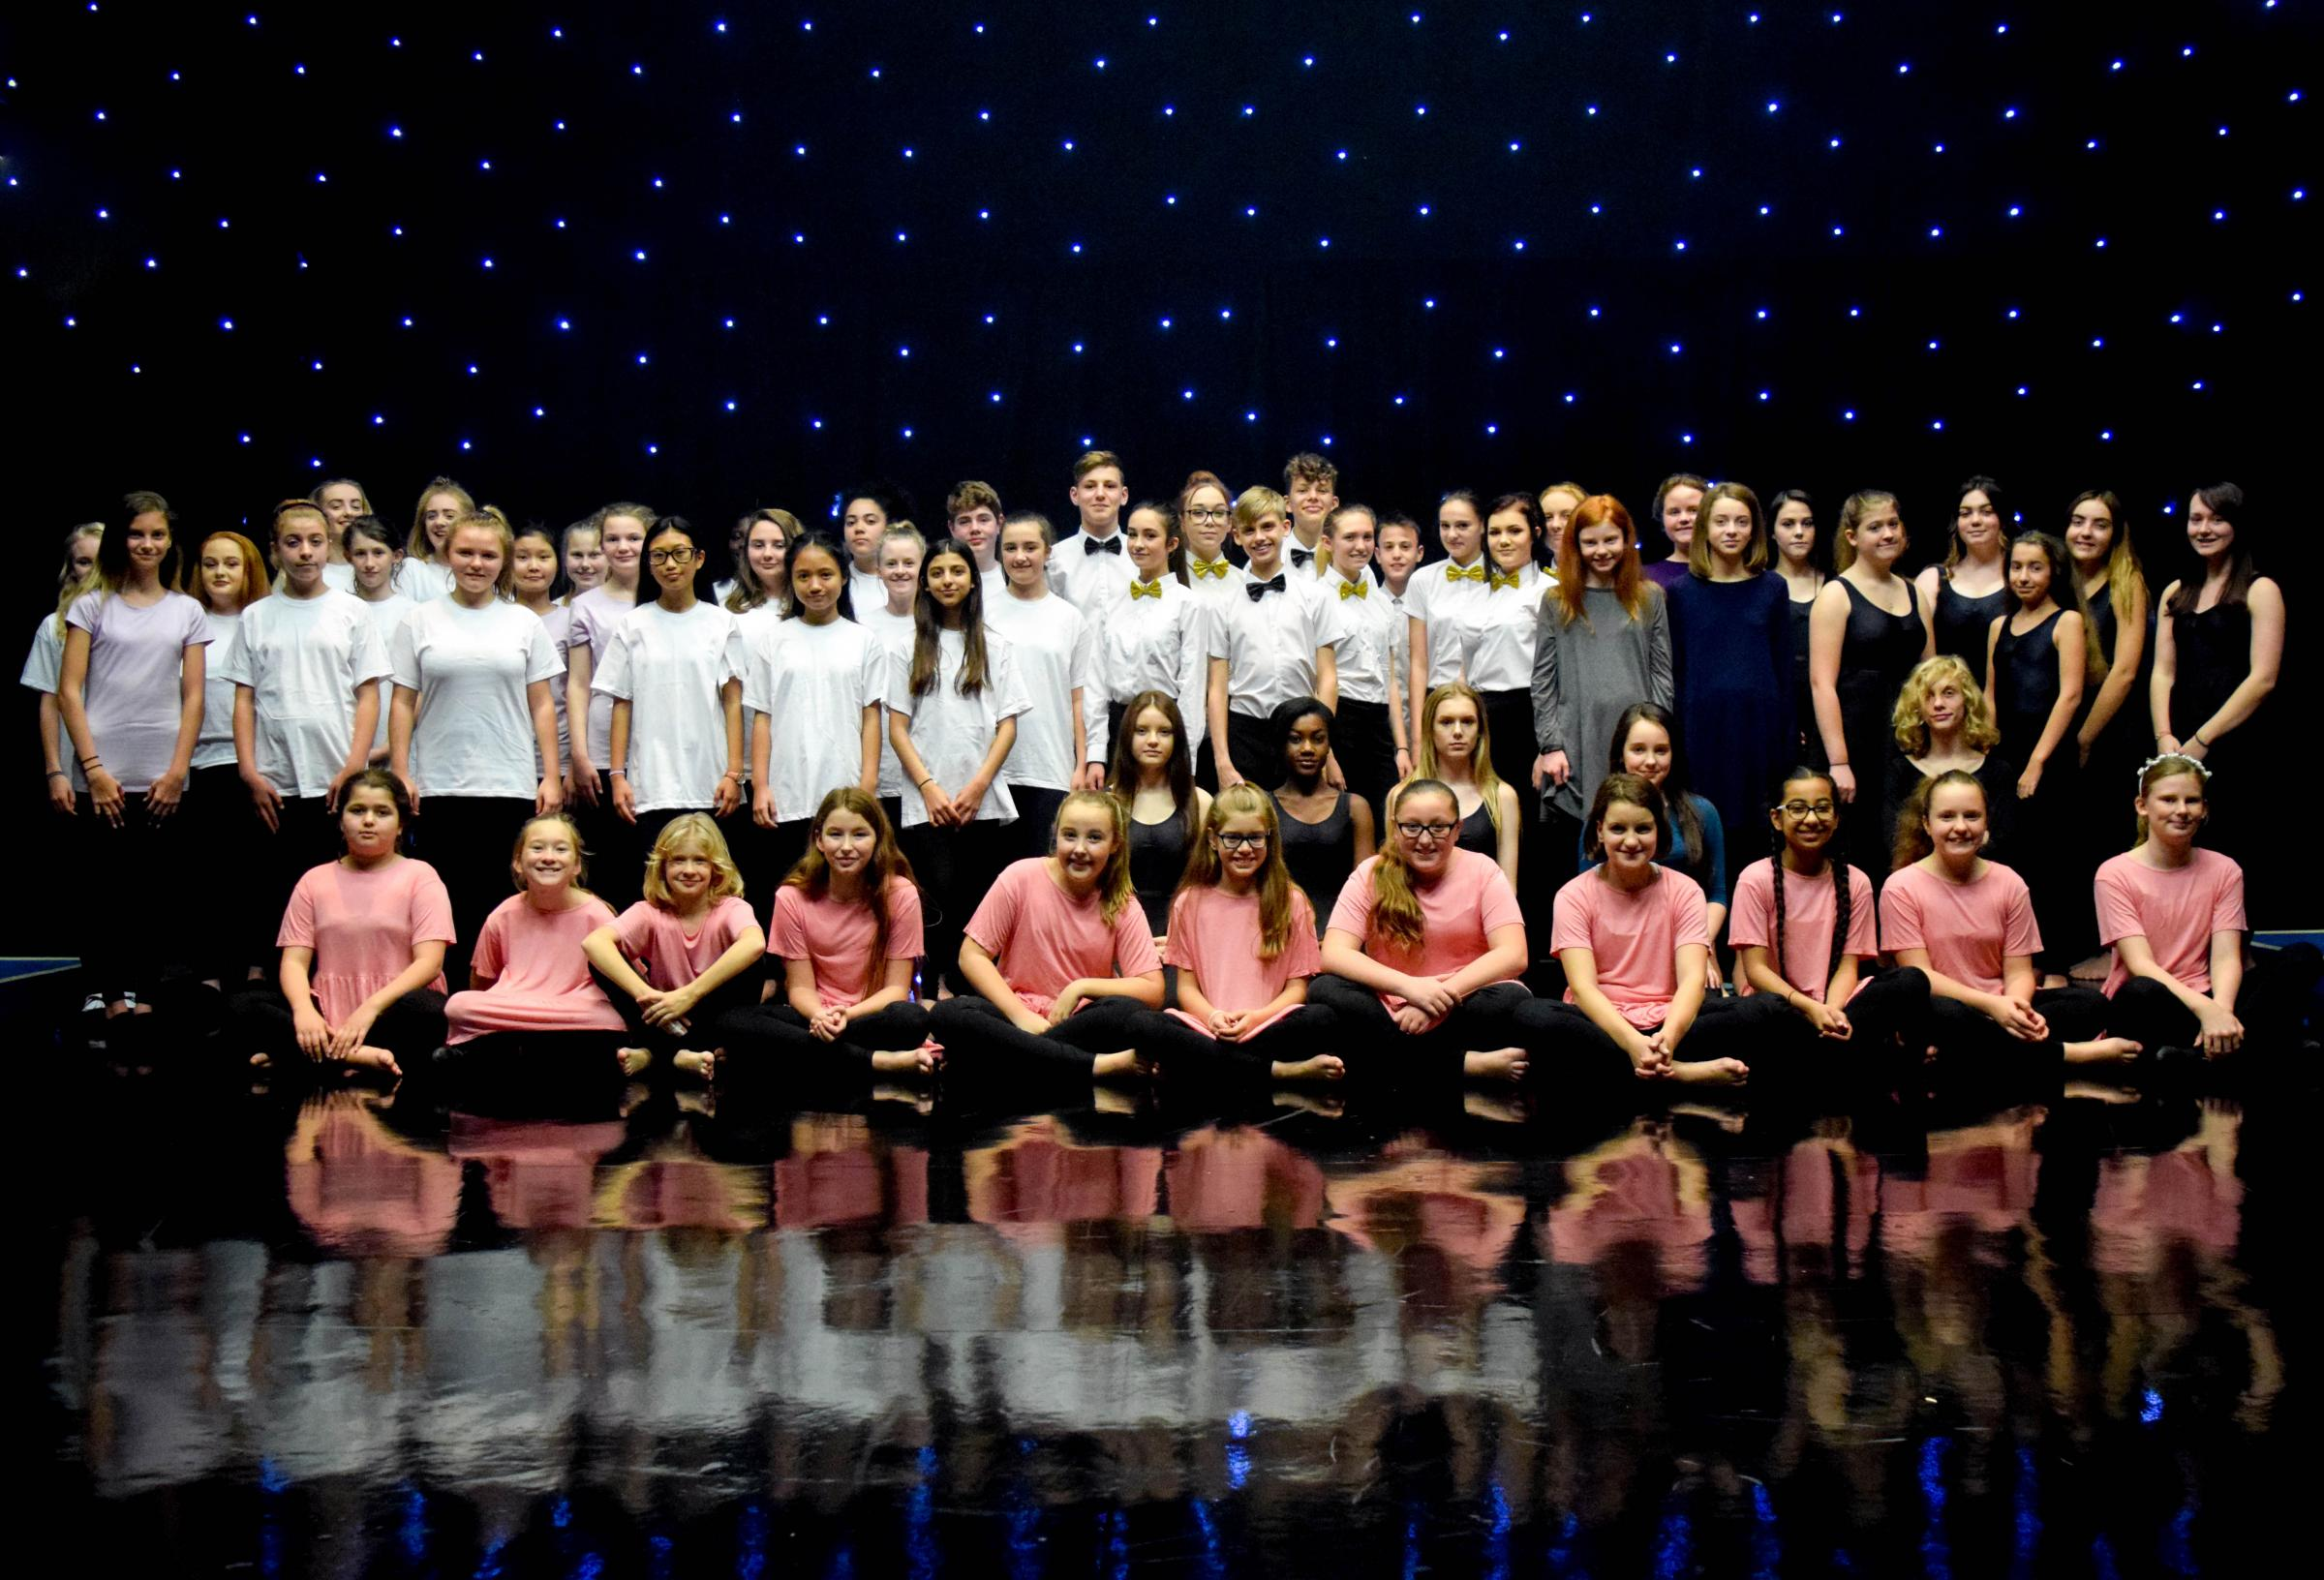 More than 70 pupils took part in Winton Academy's largest dance showcase